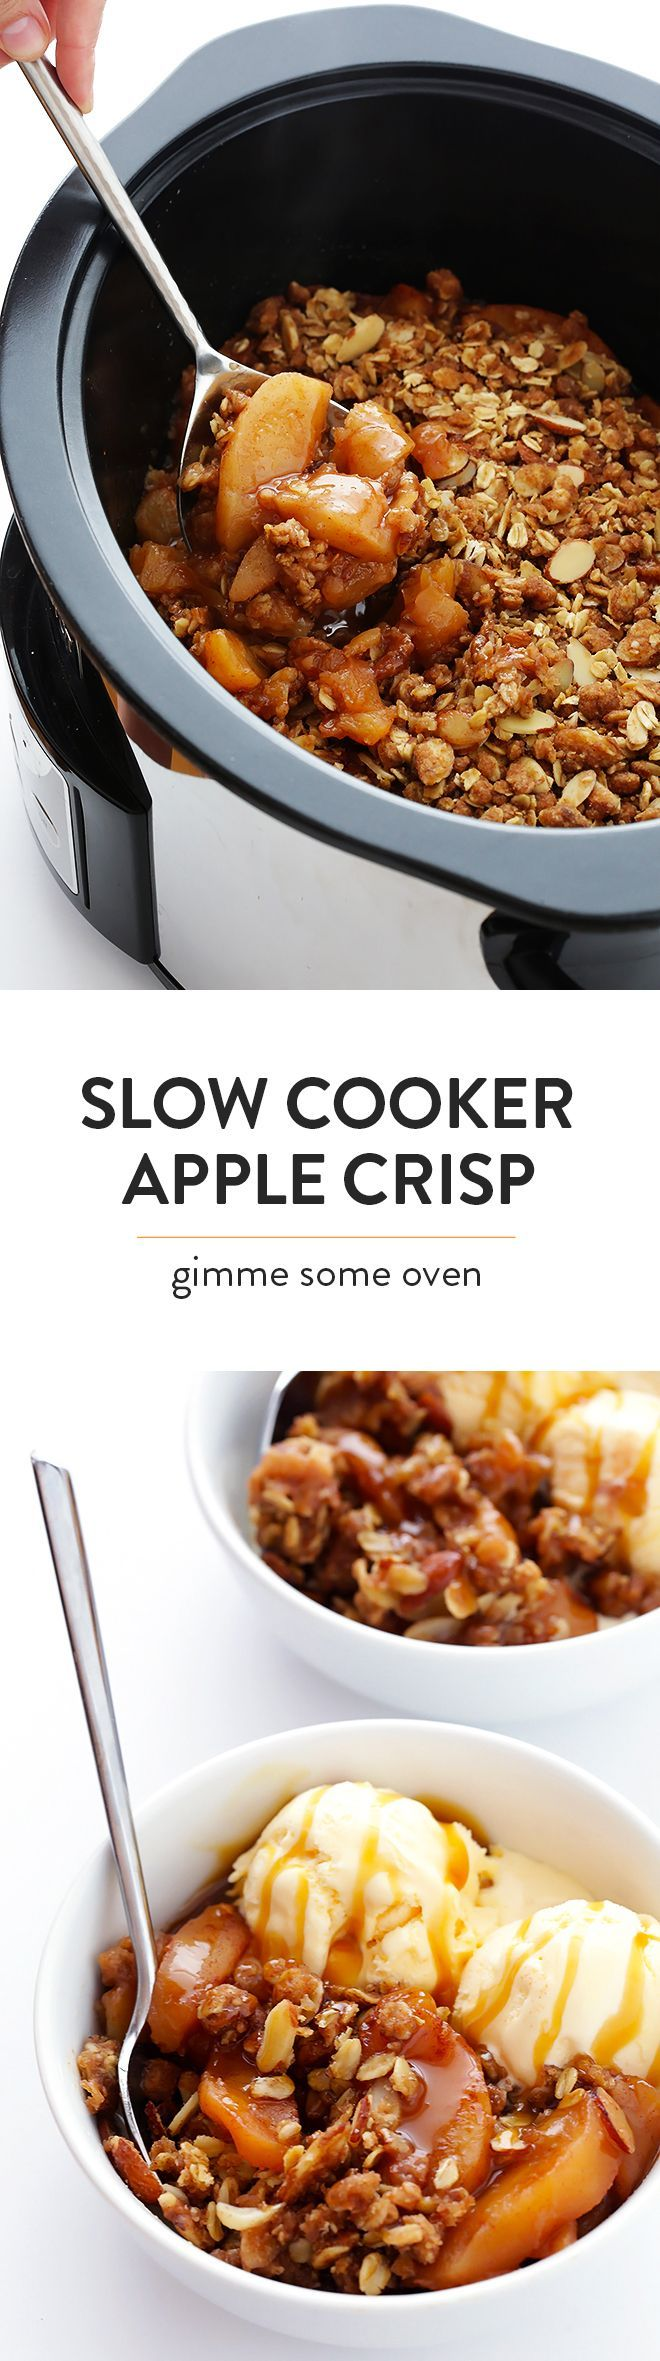 This Slow Cooker Apple Crisp recipe is easy to make in the crock-pot, and it's made with the most delicious warm cinnamon apples and crisp oatmeal-almond topping!